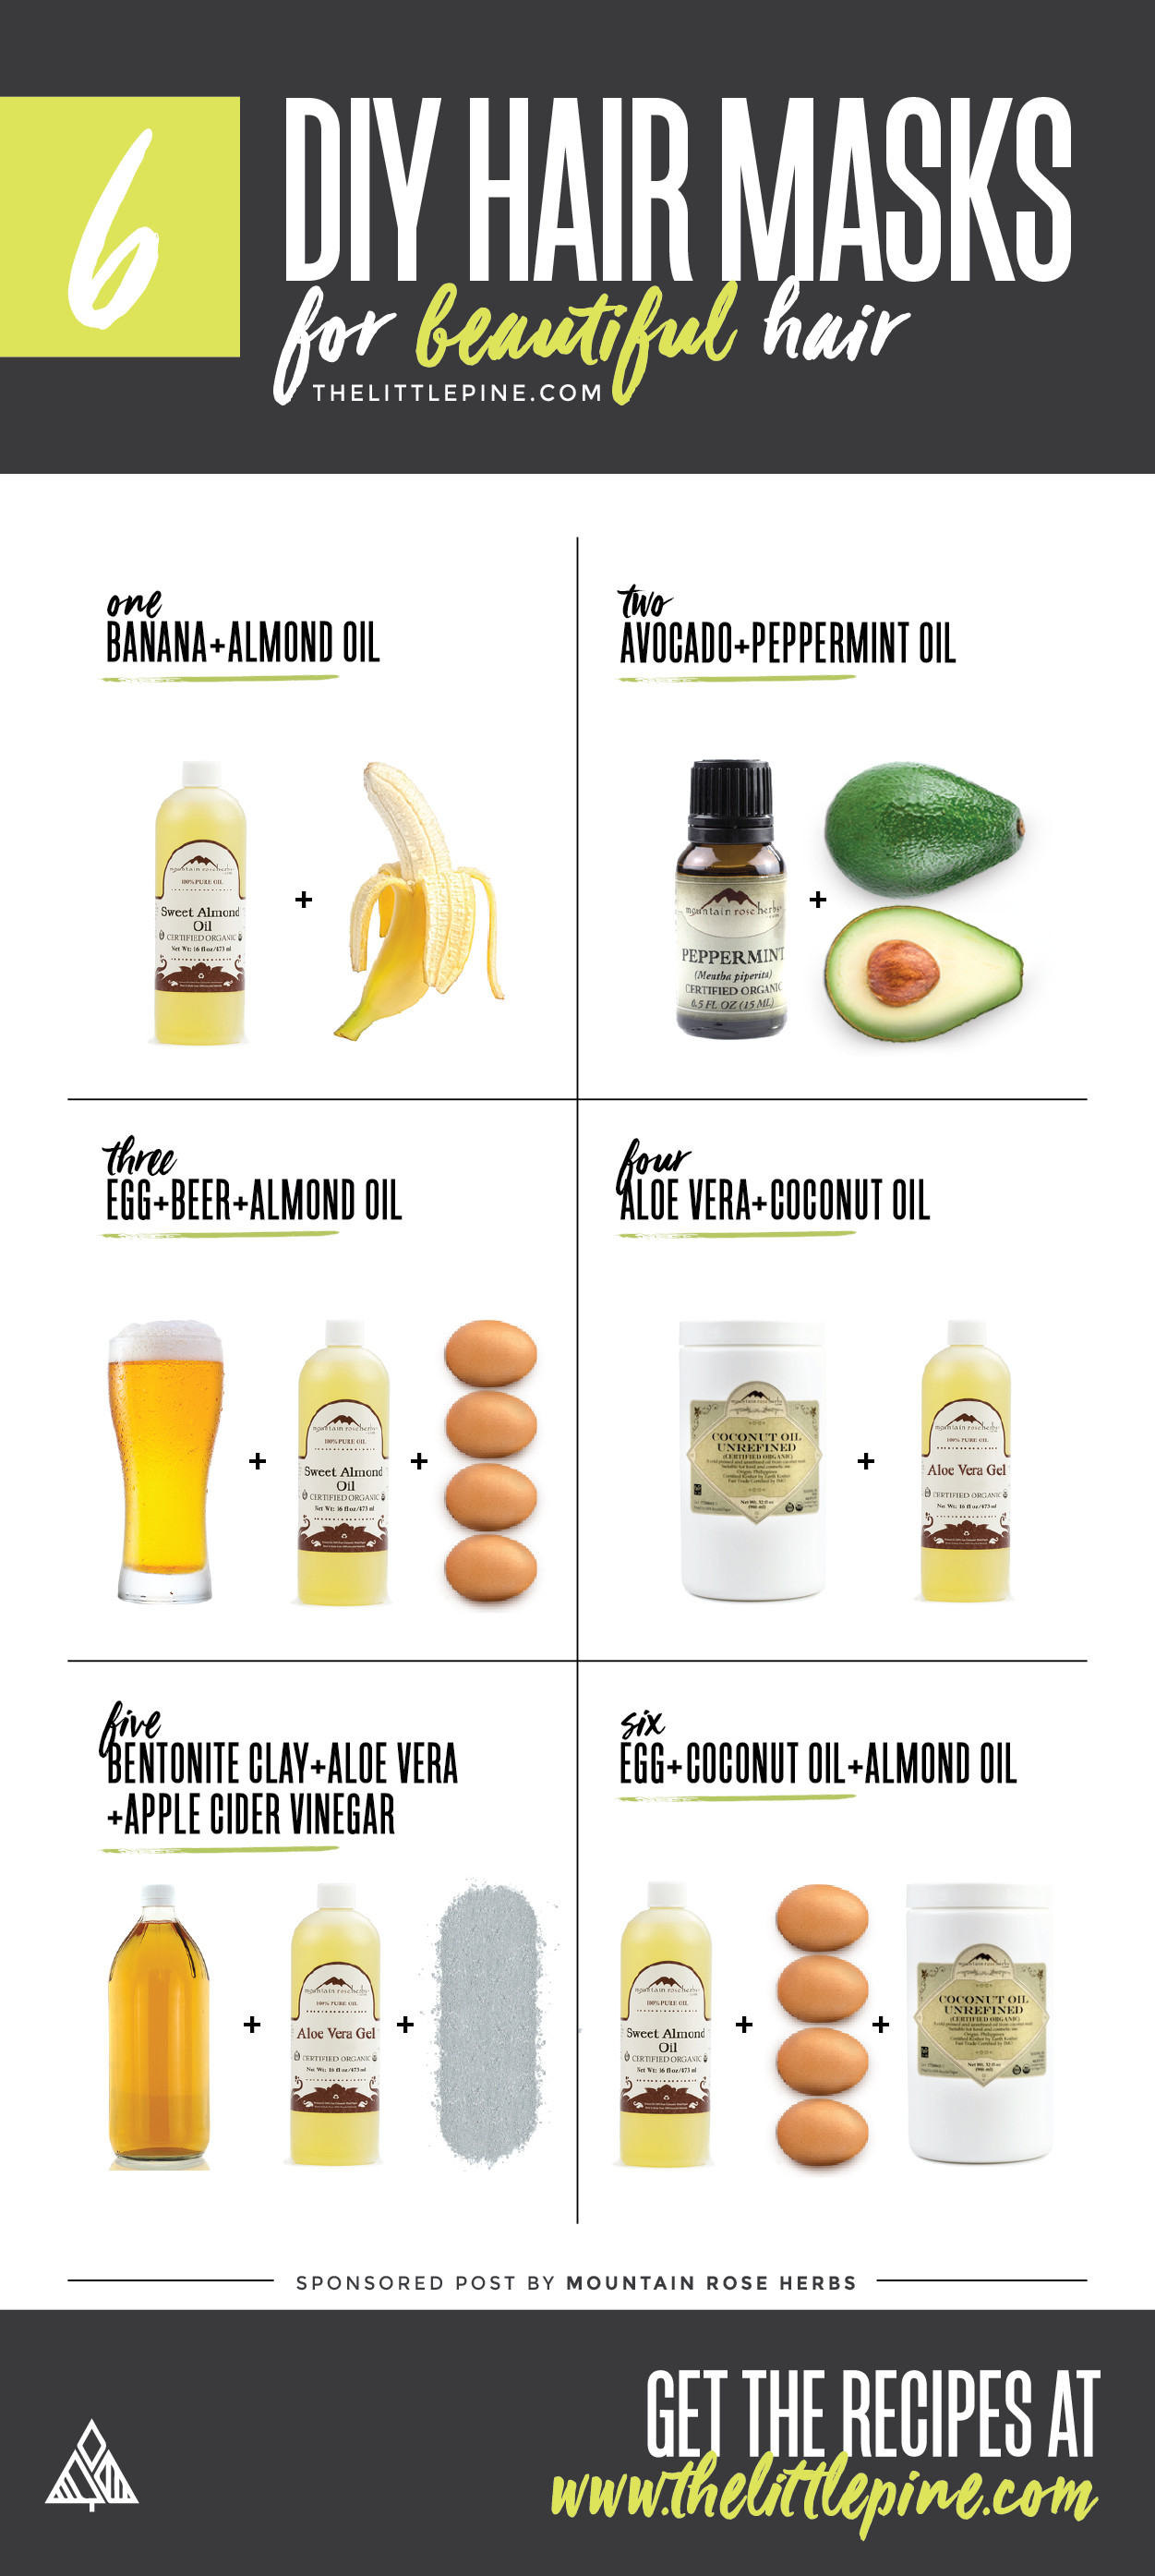 Best ideas about Best DIY Hair Mask . Save or Pin 6 DIY Hair Masks Little Pine Low Carb Now.